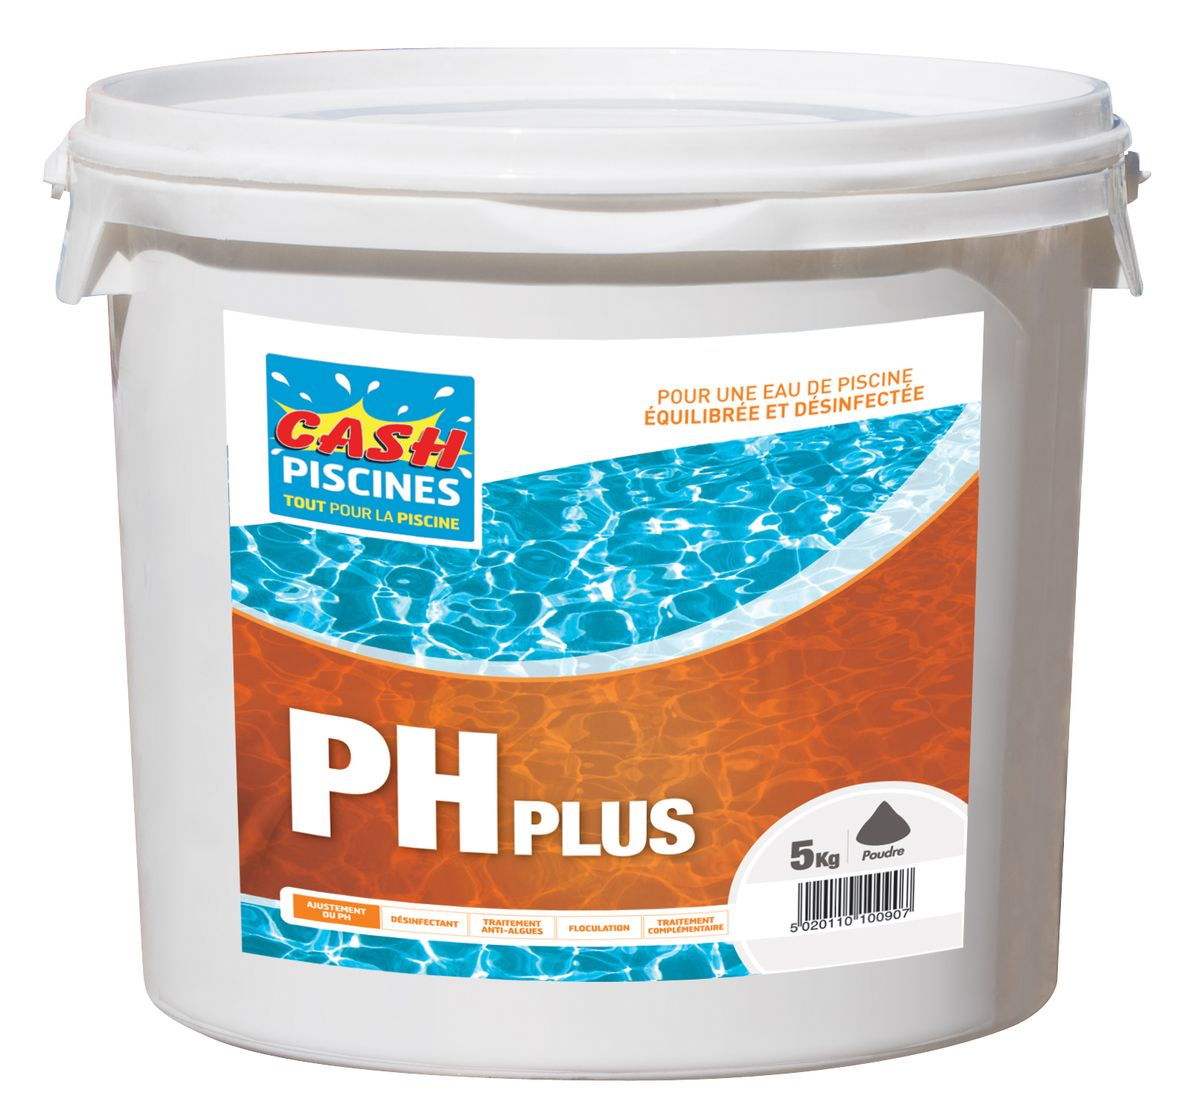 Ph plus 5kg cash piscines for Avis cash piscine